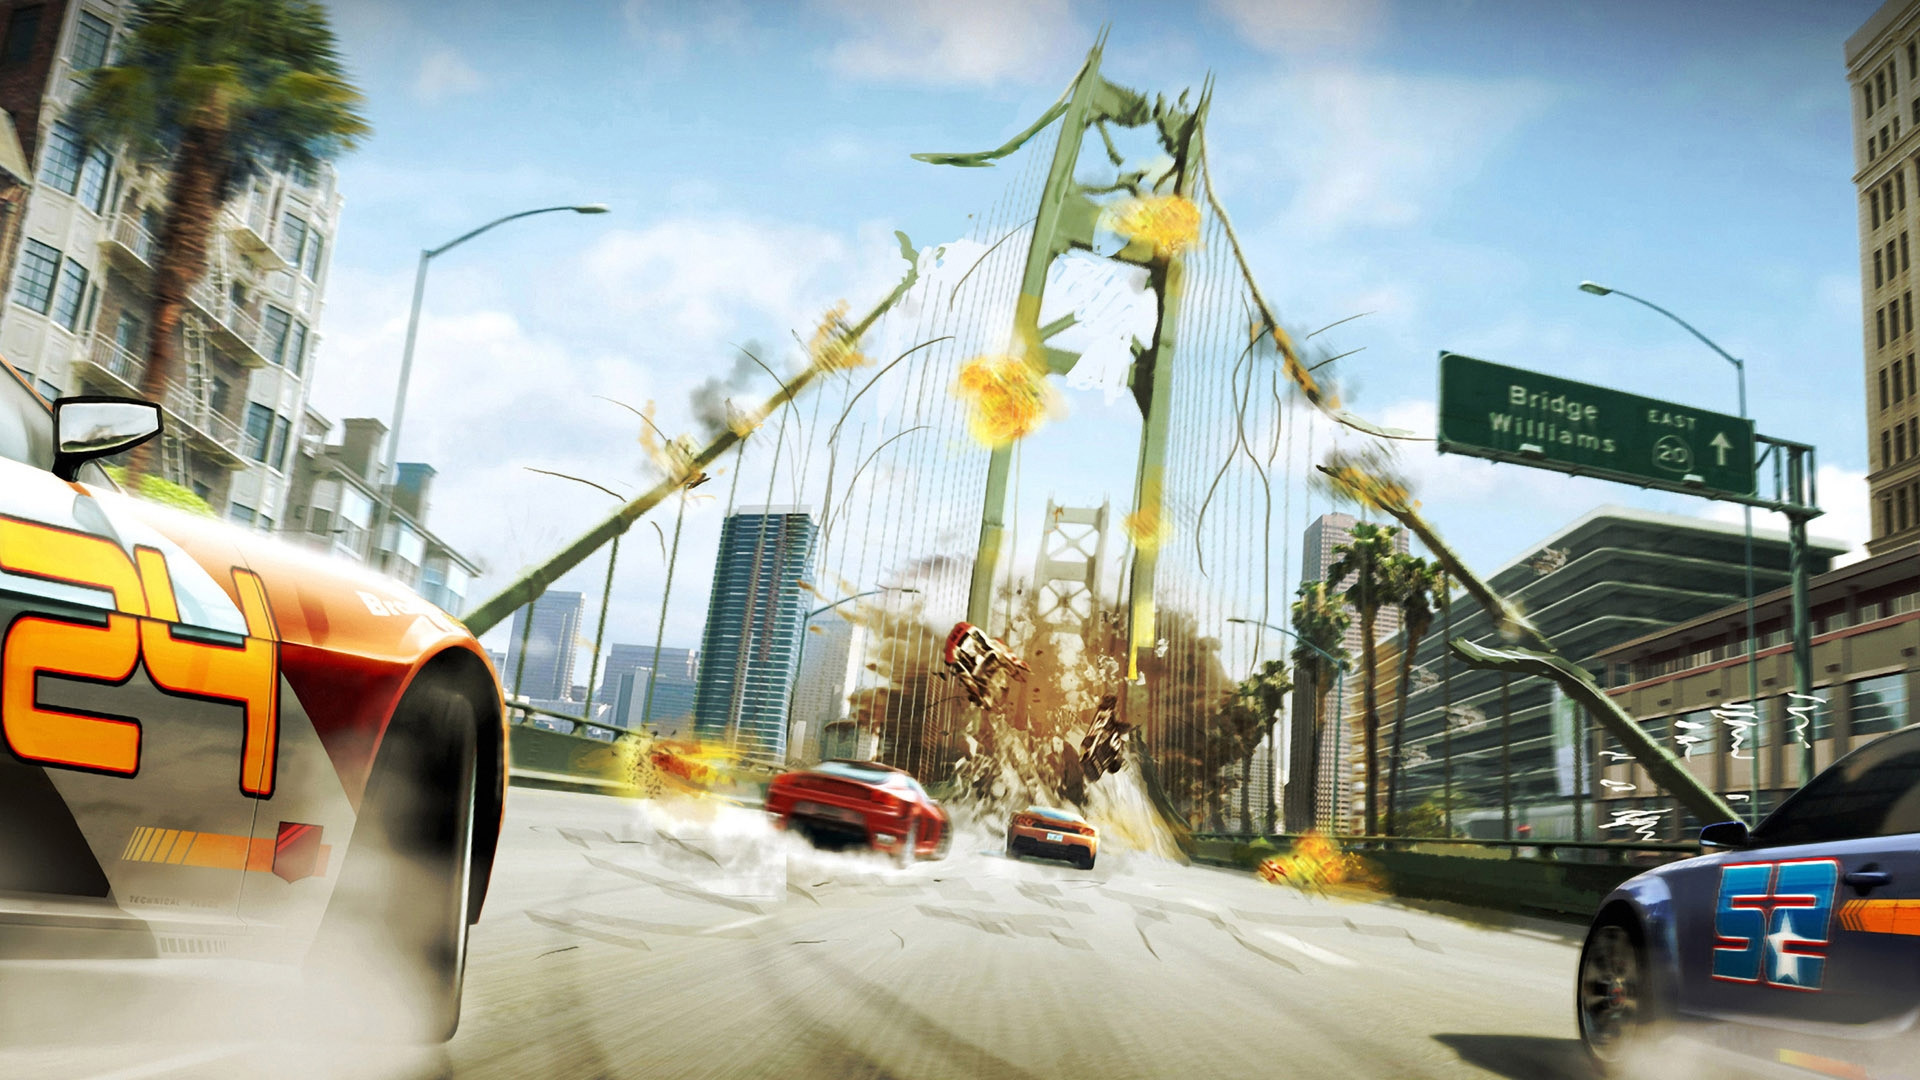 background - Burnout Paradise sa dočká remasteru!